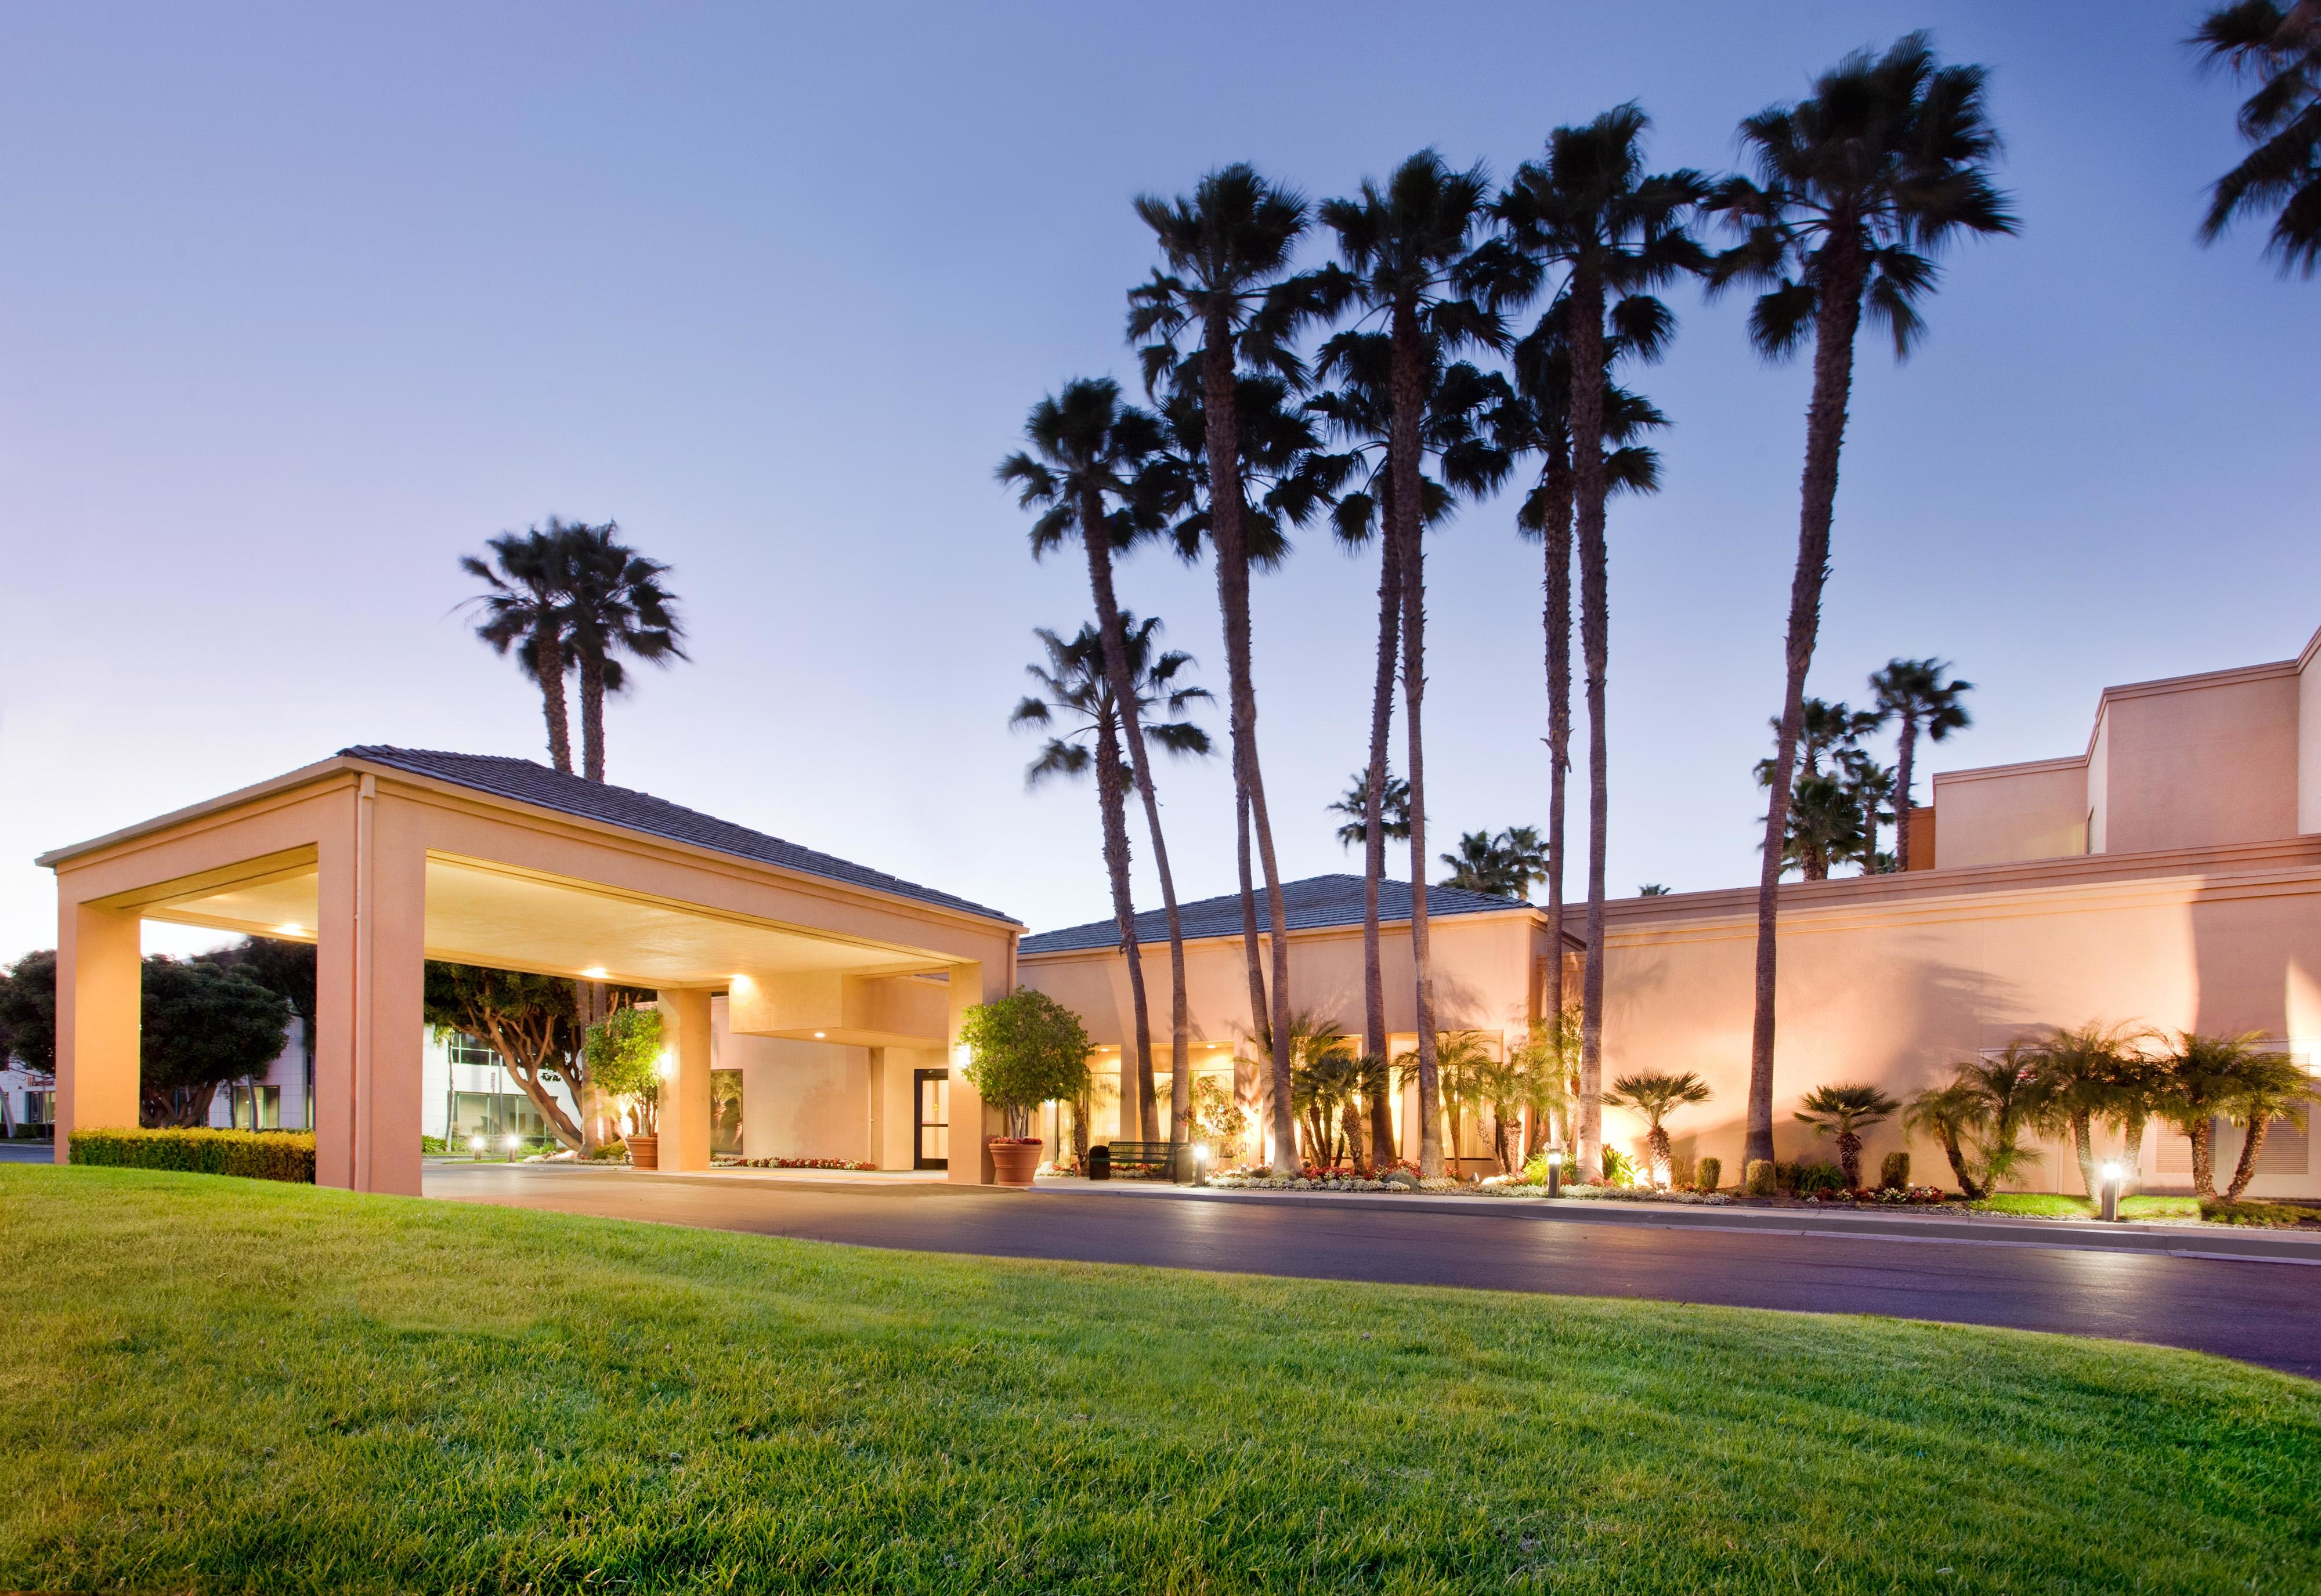 Hotels In Torrance Ca